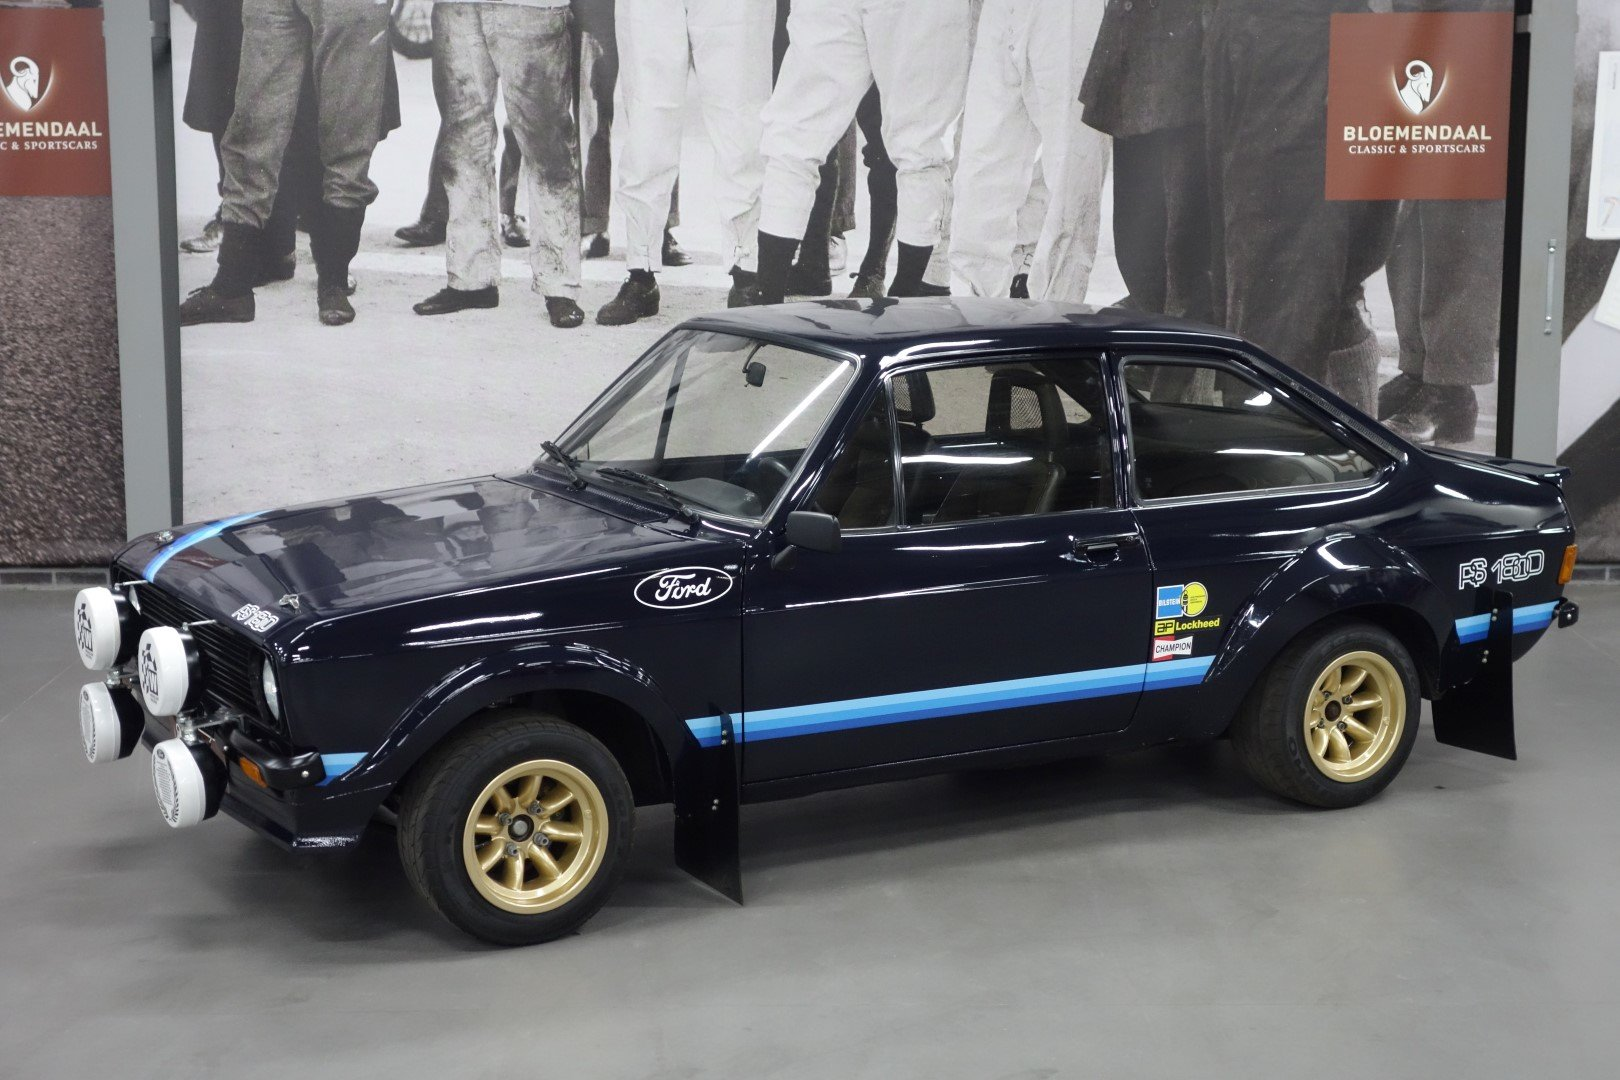 1978 Ford Escort Mk2 RS 1800 BDA For Sale (picture 1 of 6)